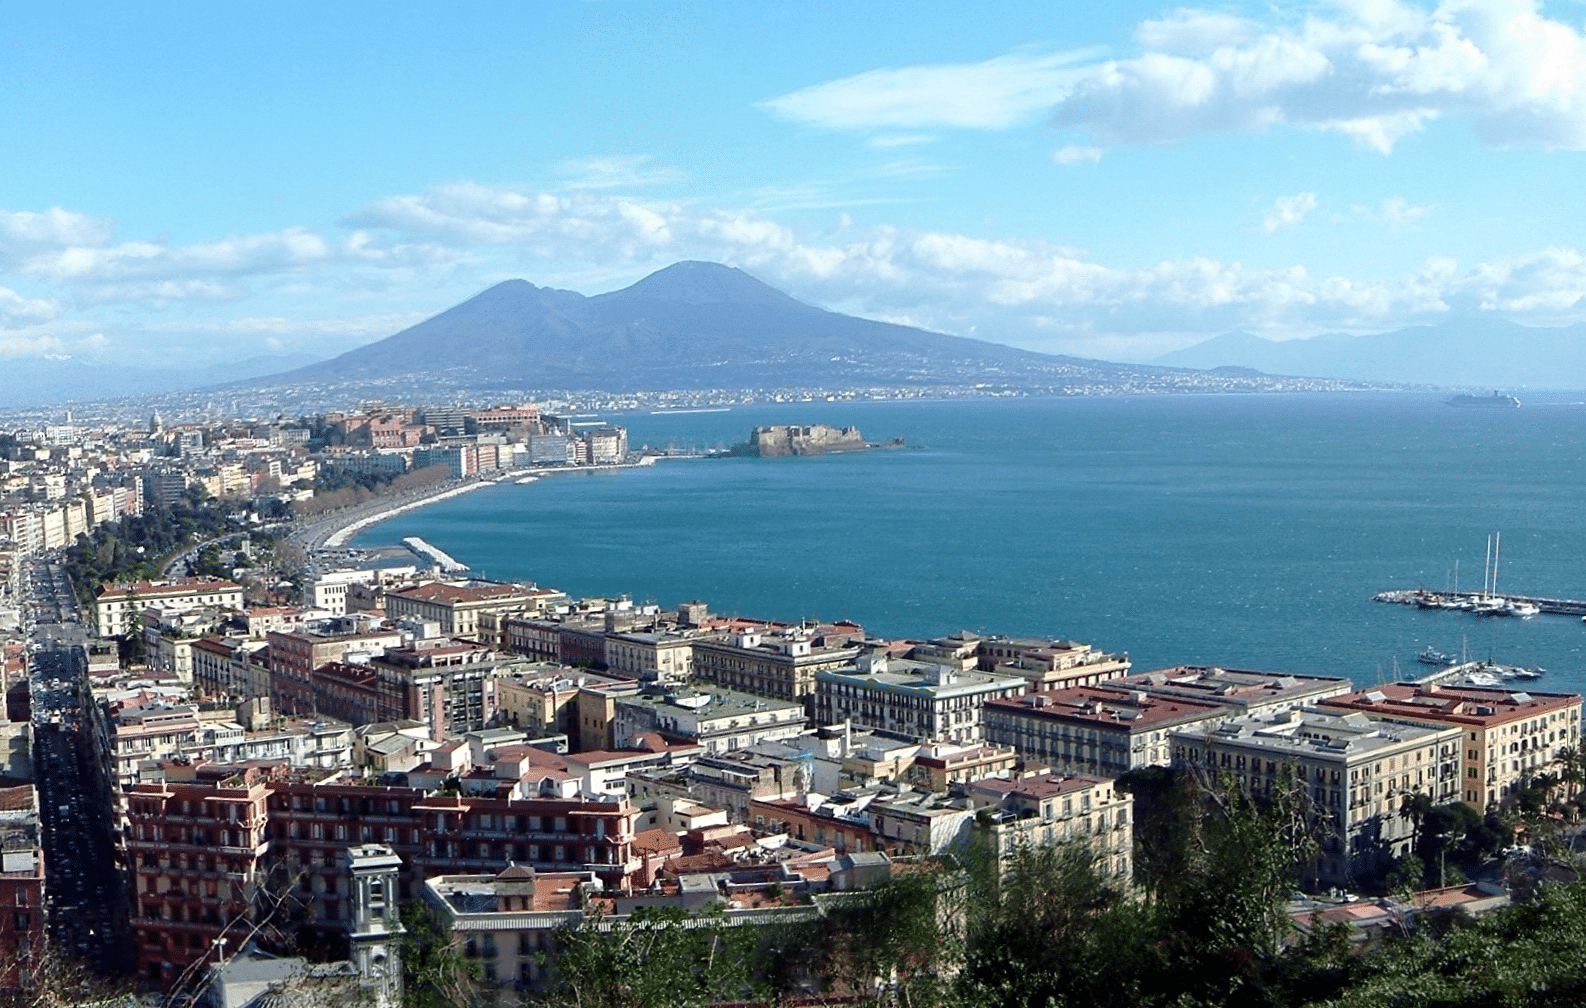 Magnificent Vesuvius, dominates the Bay of Naples